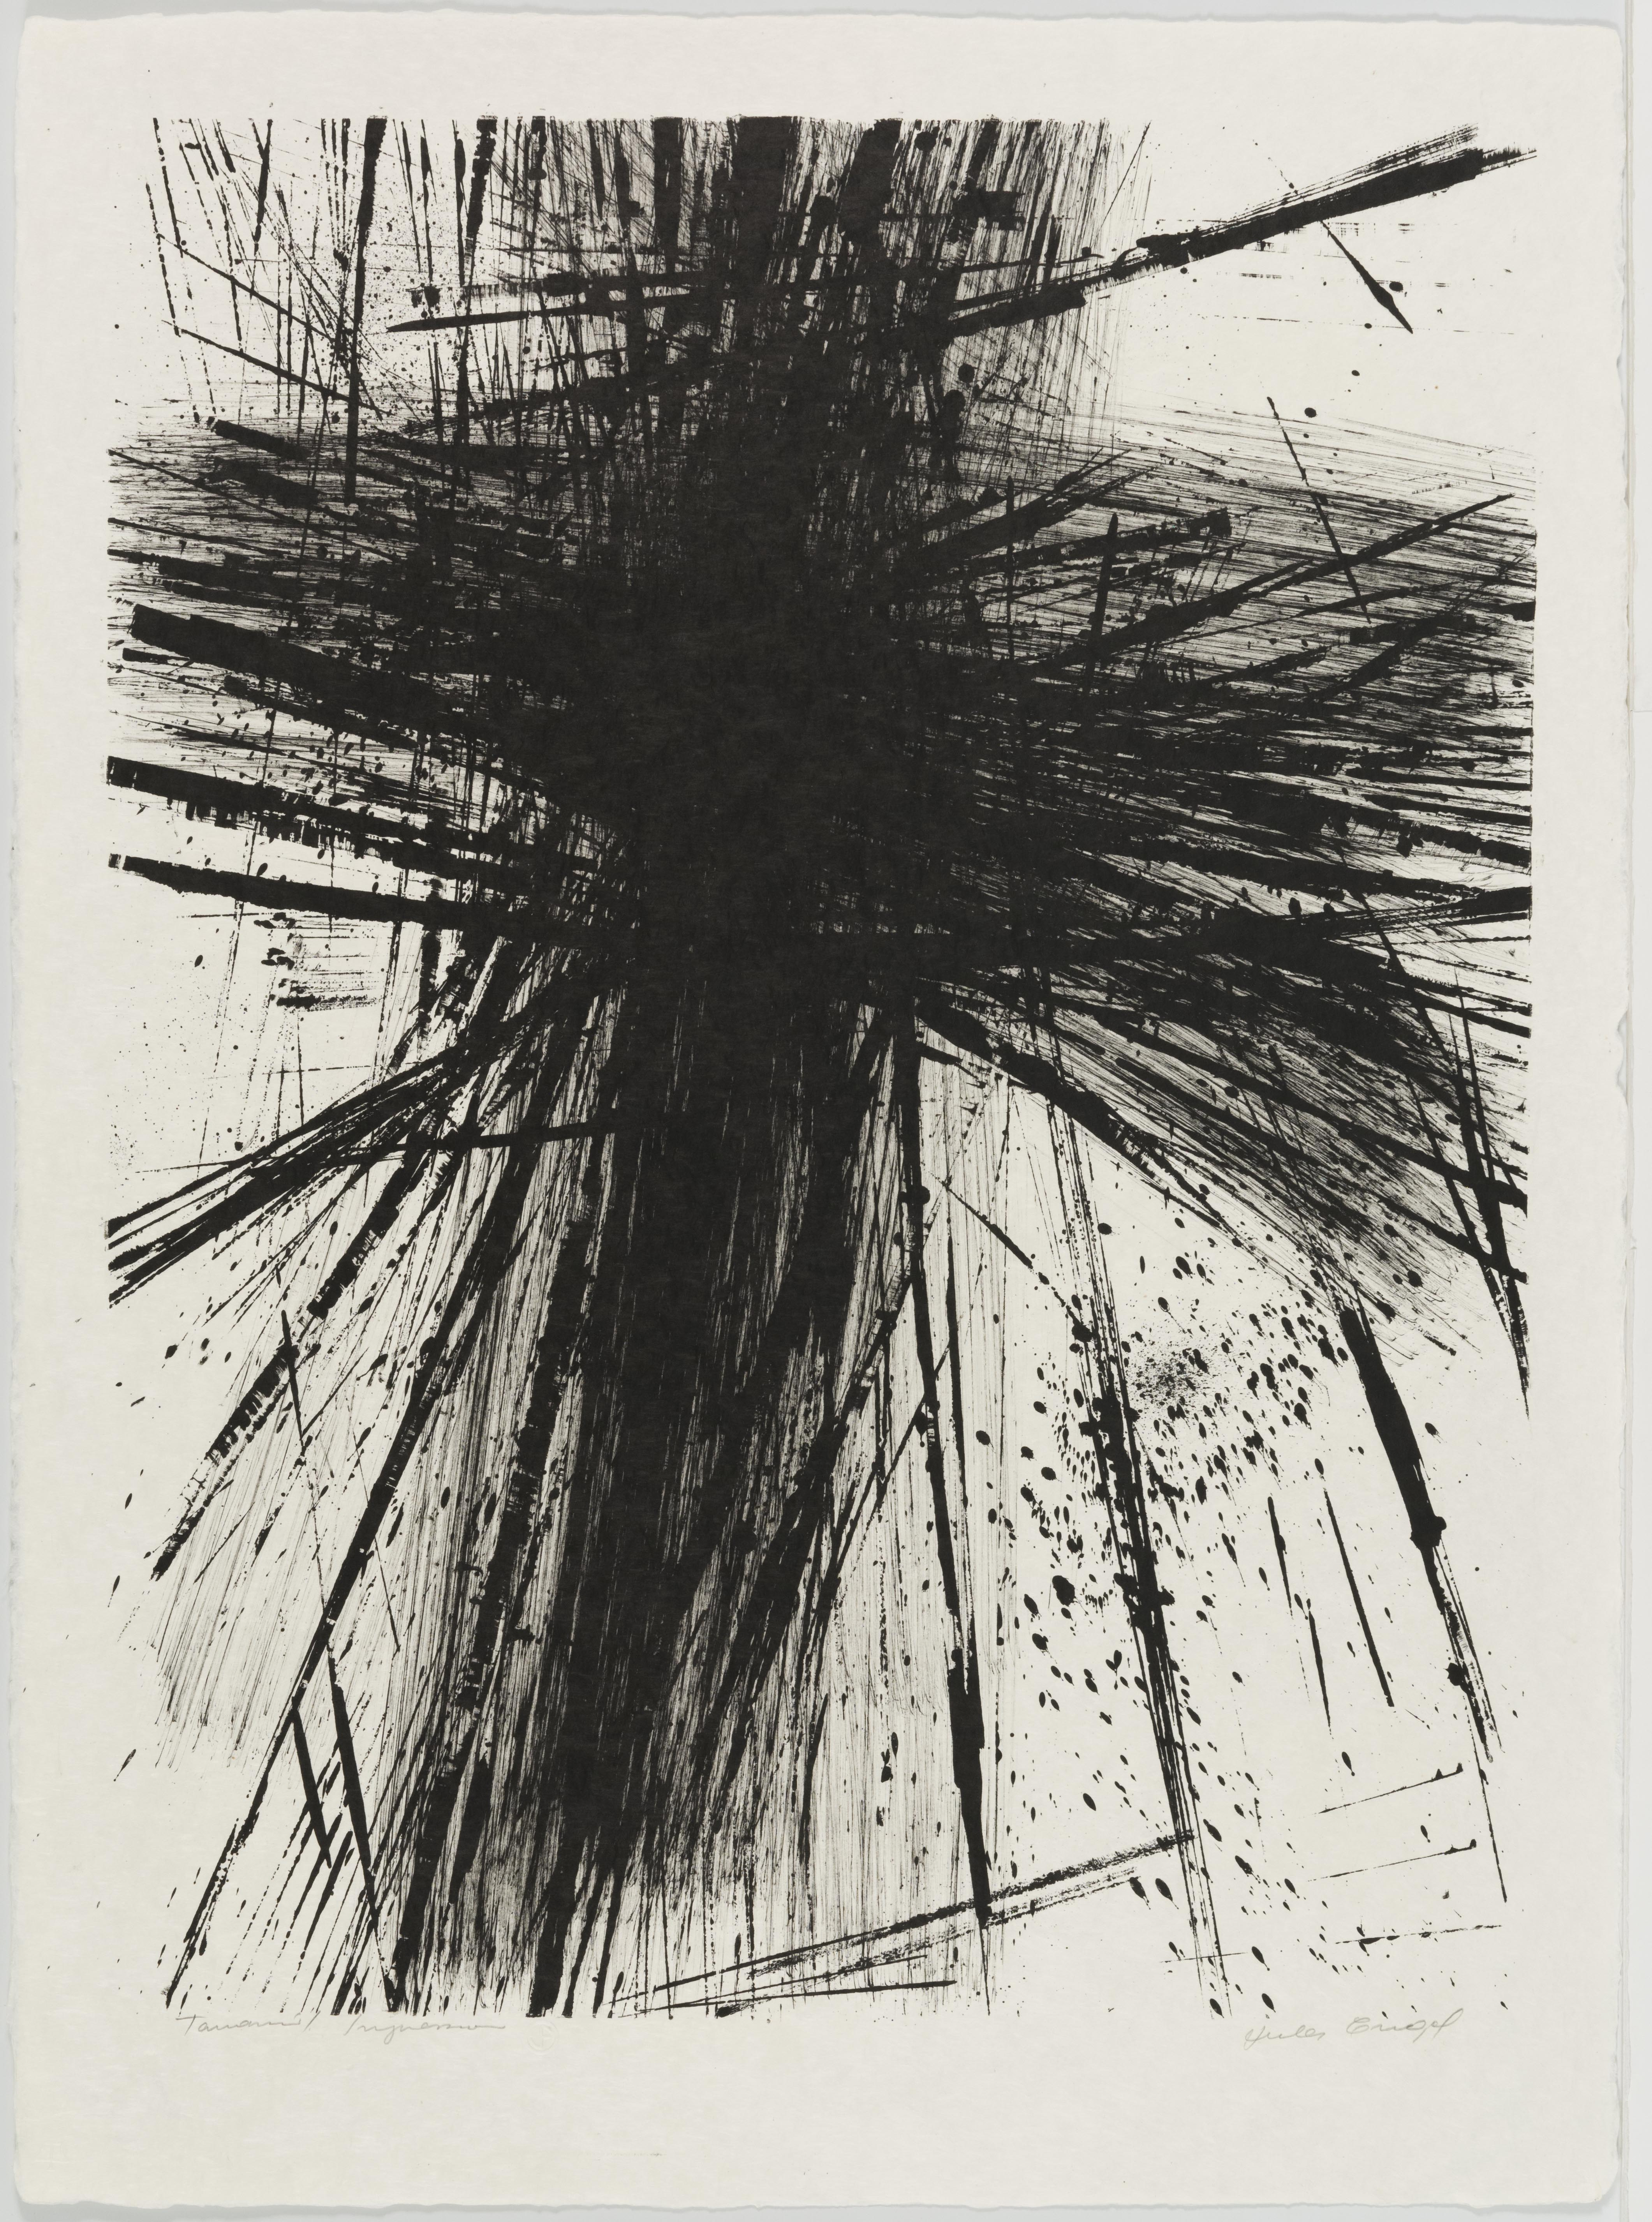 Jules Engel, Constant Image, December 1960- January 1961